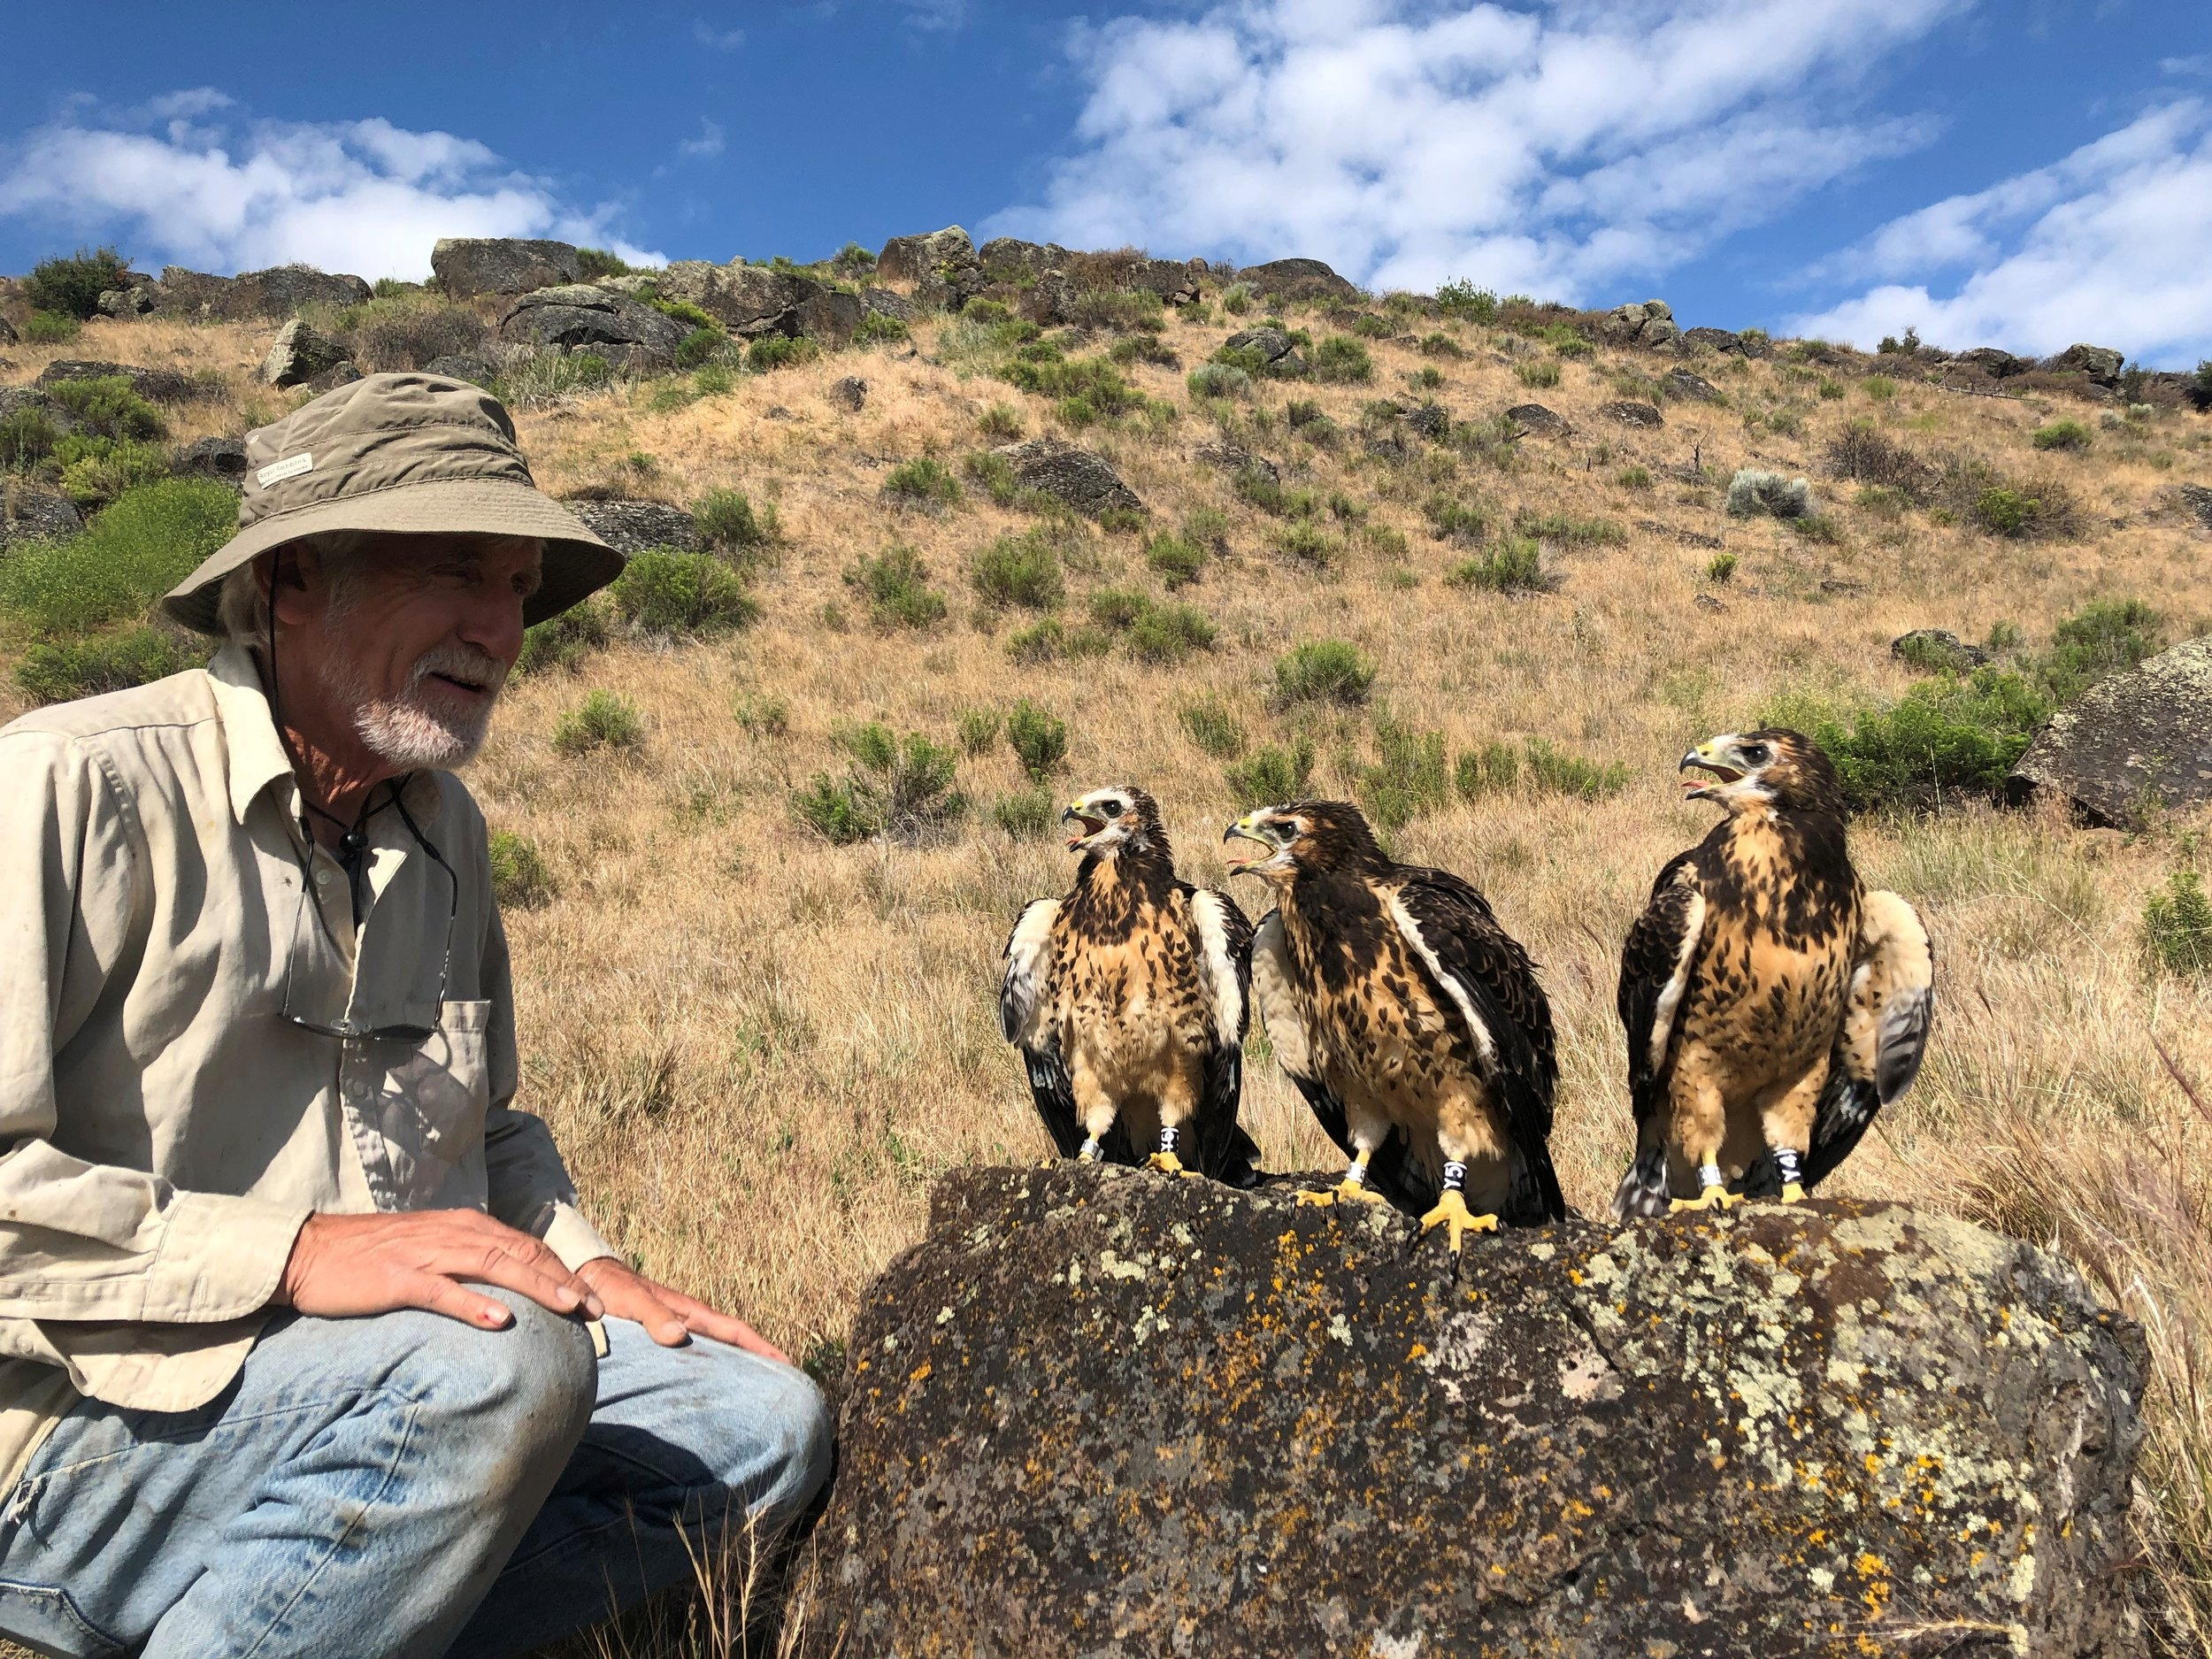 Dr. Pete Bloom with three Swainson's Hawks chicks banded in the Butte Valley - July 2019. (Photo by Geoff Bedrosian)